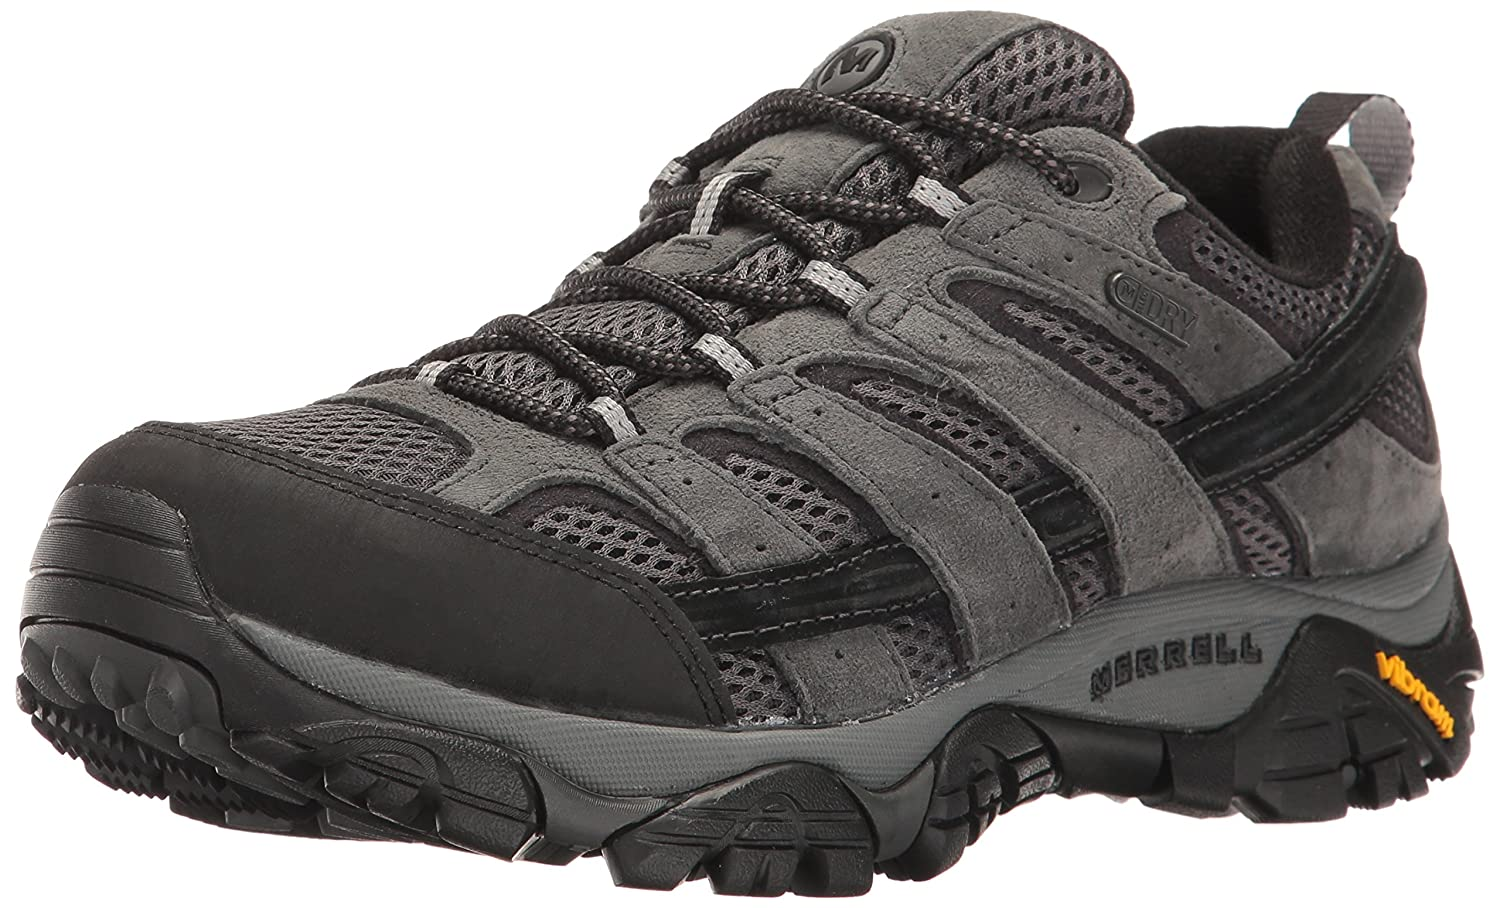 Granite 44 EU Merrell Hommes's Moab 2 imperméable Hiking chaussures